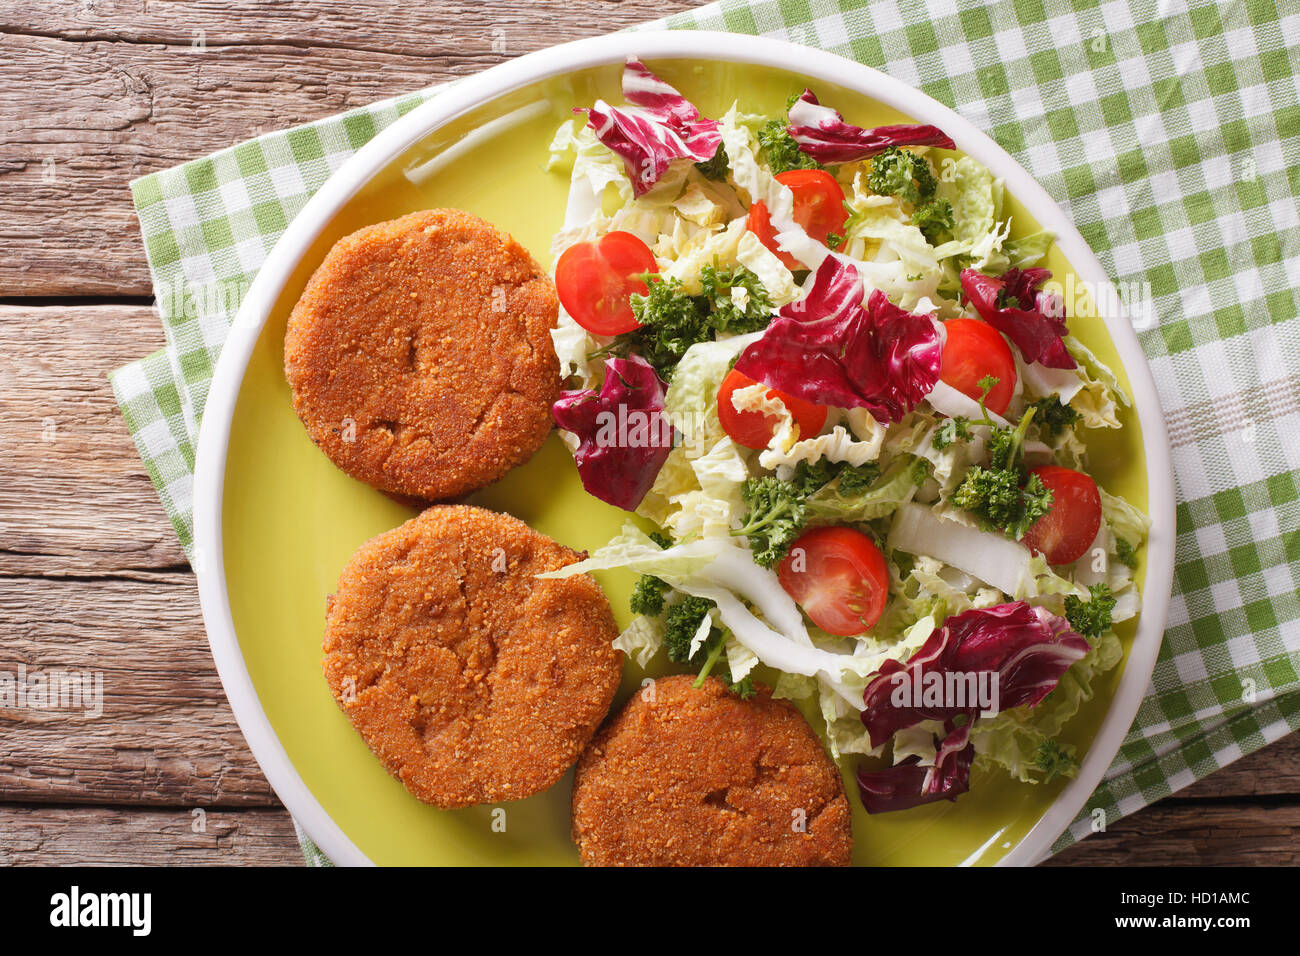 Dietary carrot burgers and fresh salad mix close-up on a plate. Horizontal view from above - Stock Image